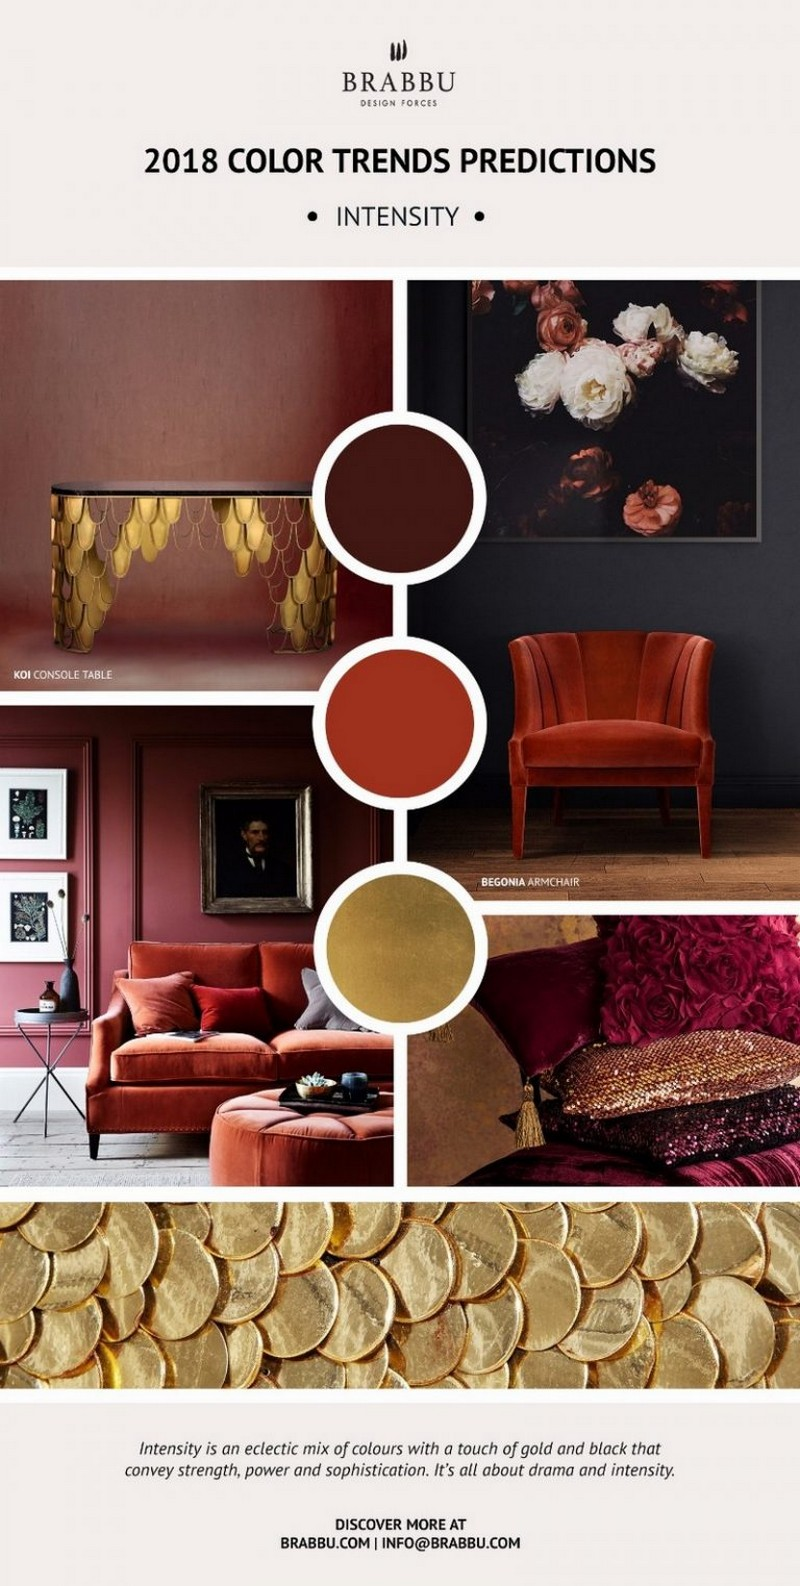 pantone's color trend predictions for 2018 Discover More About Pantone's Color Trend Predictions for 2018 Discover More About Pantones Color Trend Predictions for 2018 4